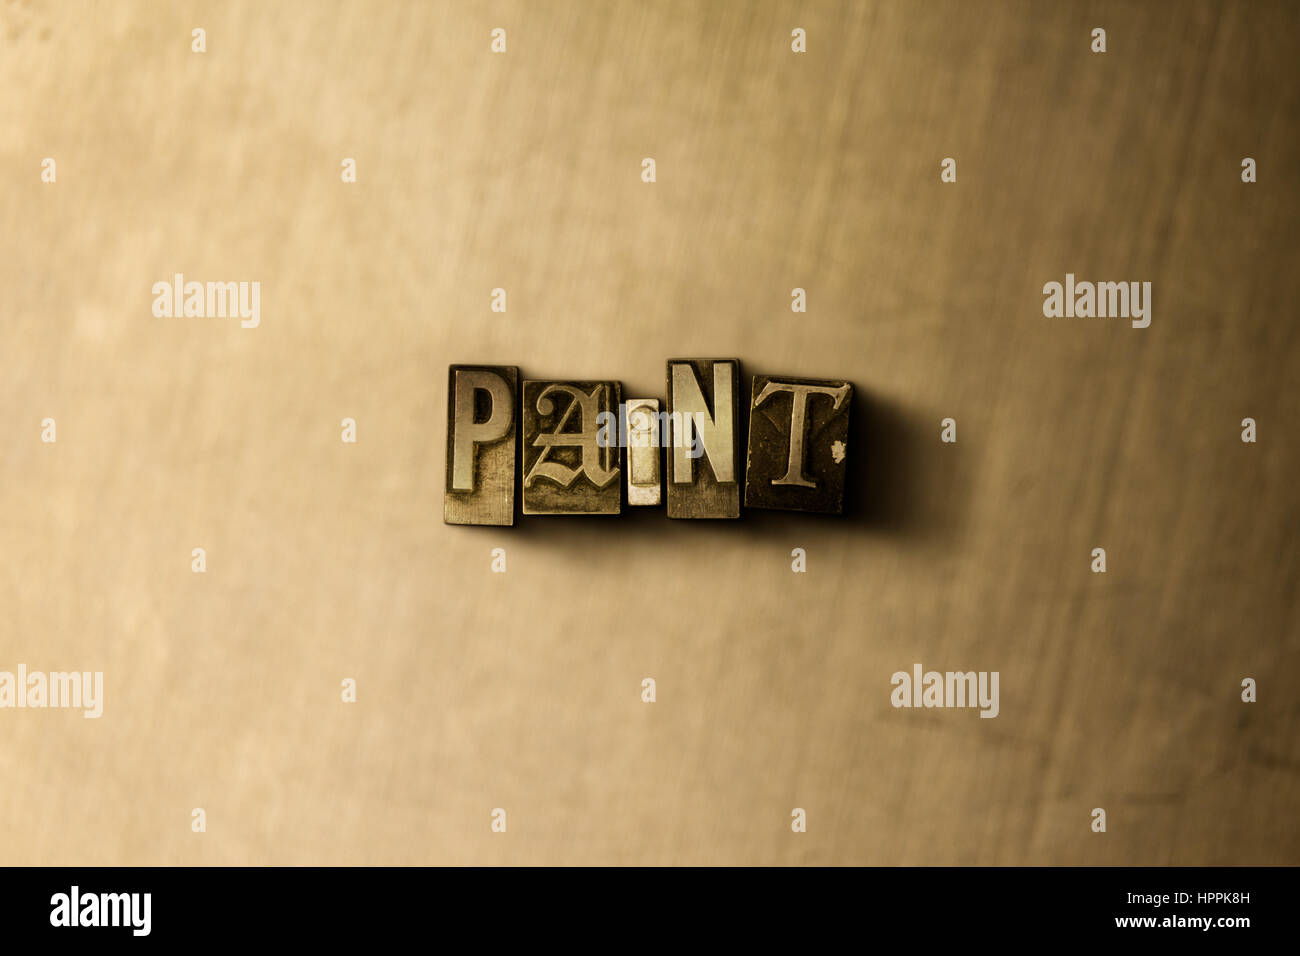 PAINT - close-up of grungy vintage typeset word on metal